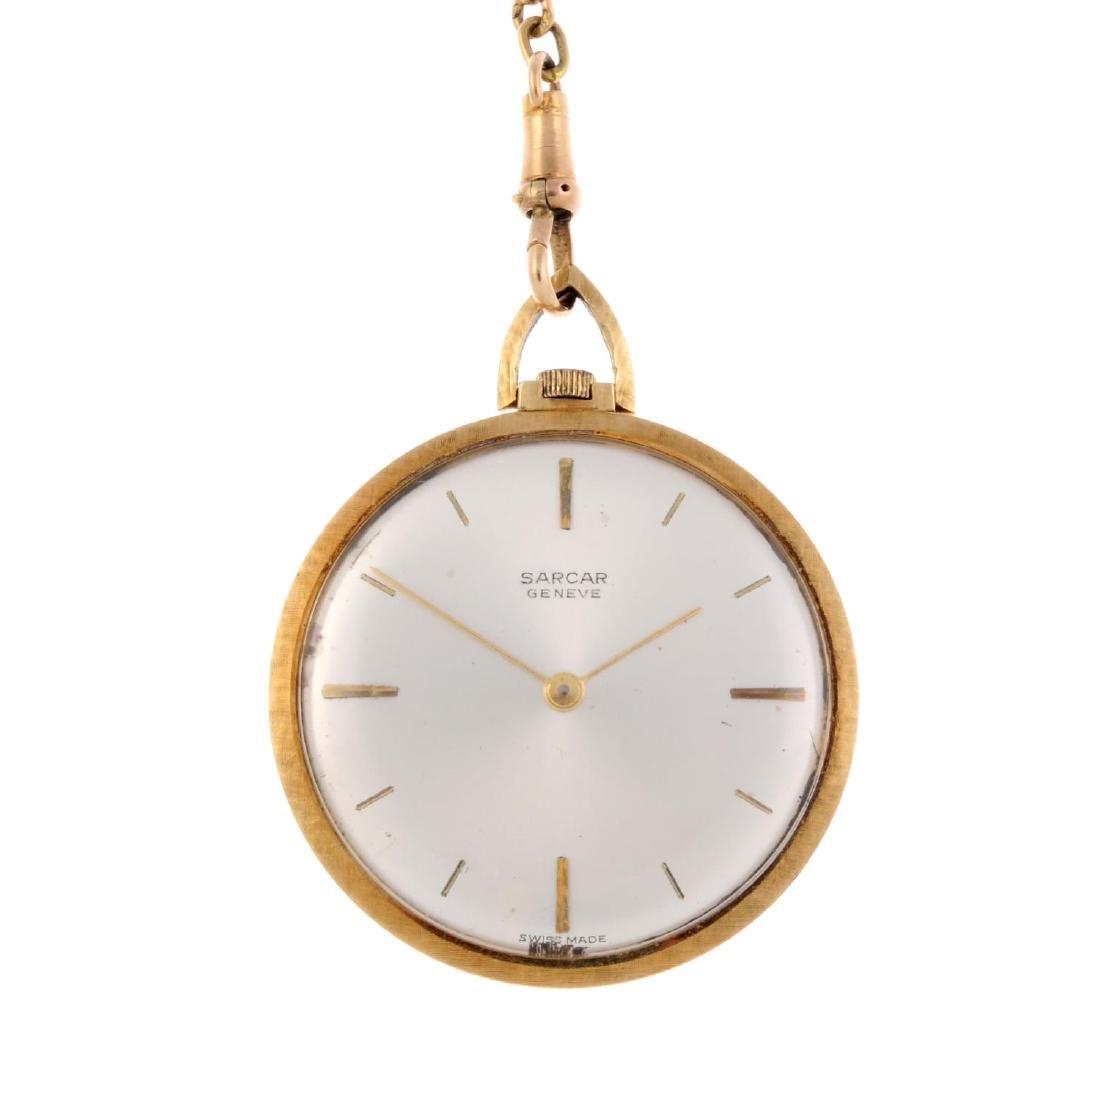 An open face pocket watch by Sarcar. Yellow metal case,